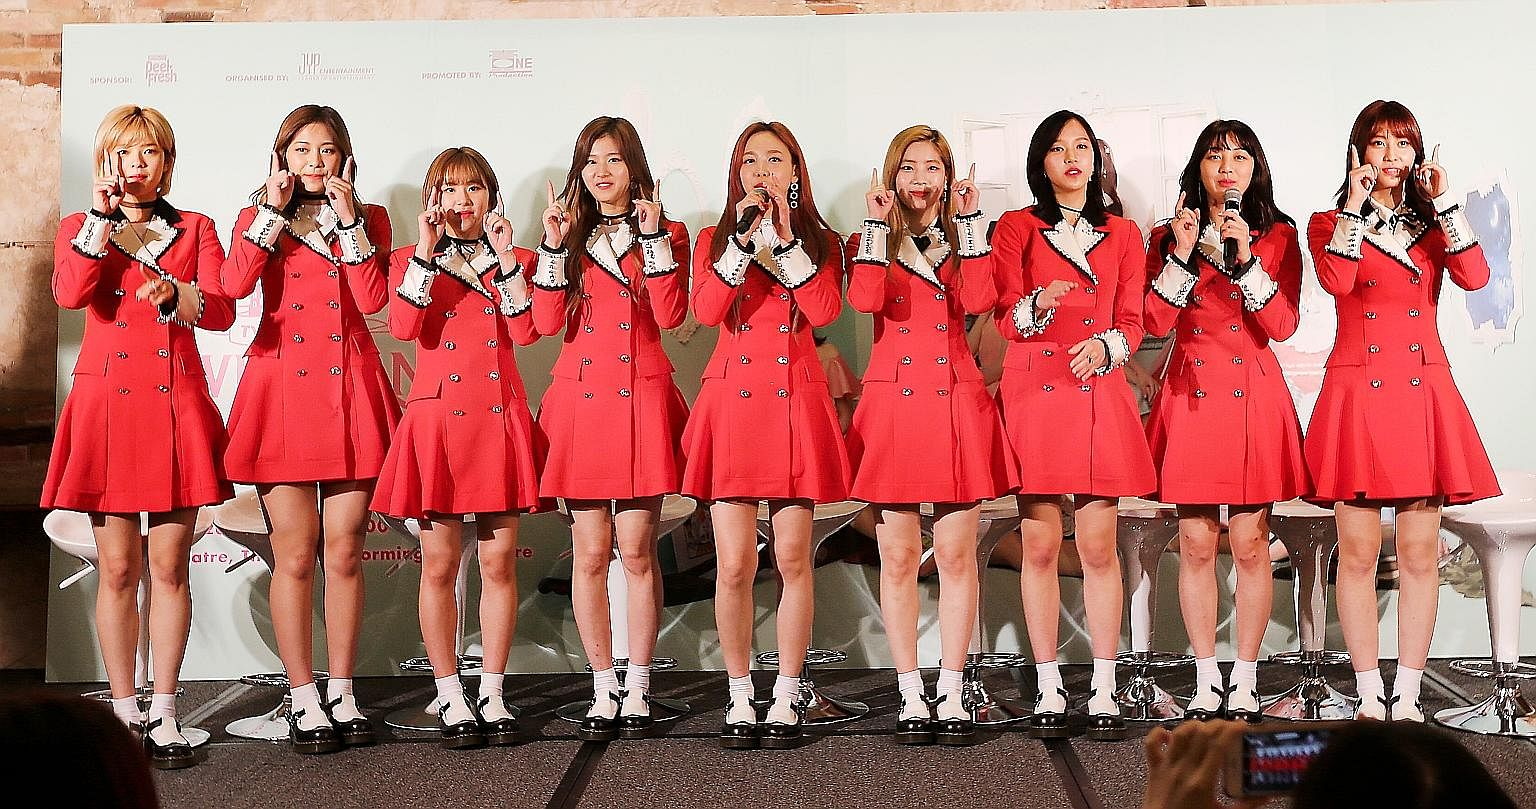 Touted to be the next big thing in K-pop are Twice's (from left) Jeongyeon, Tzuyu, Chaeyoung, Sana, Nayeon, Dahyun, Mina, Jihyo and Momo.